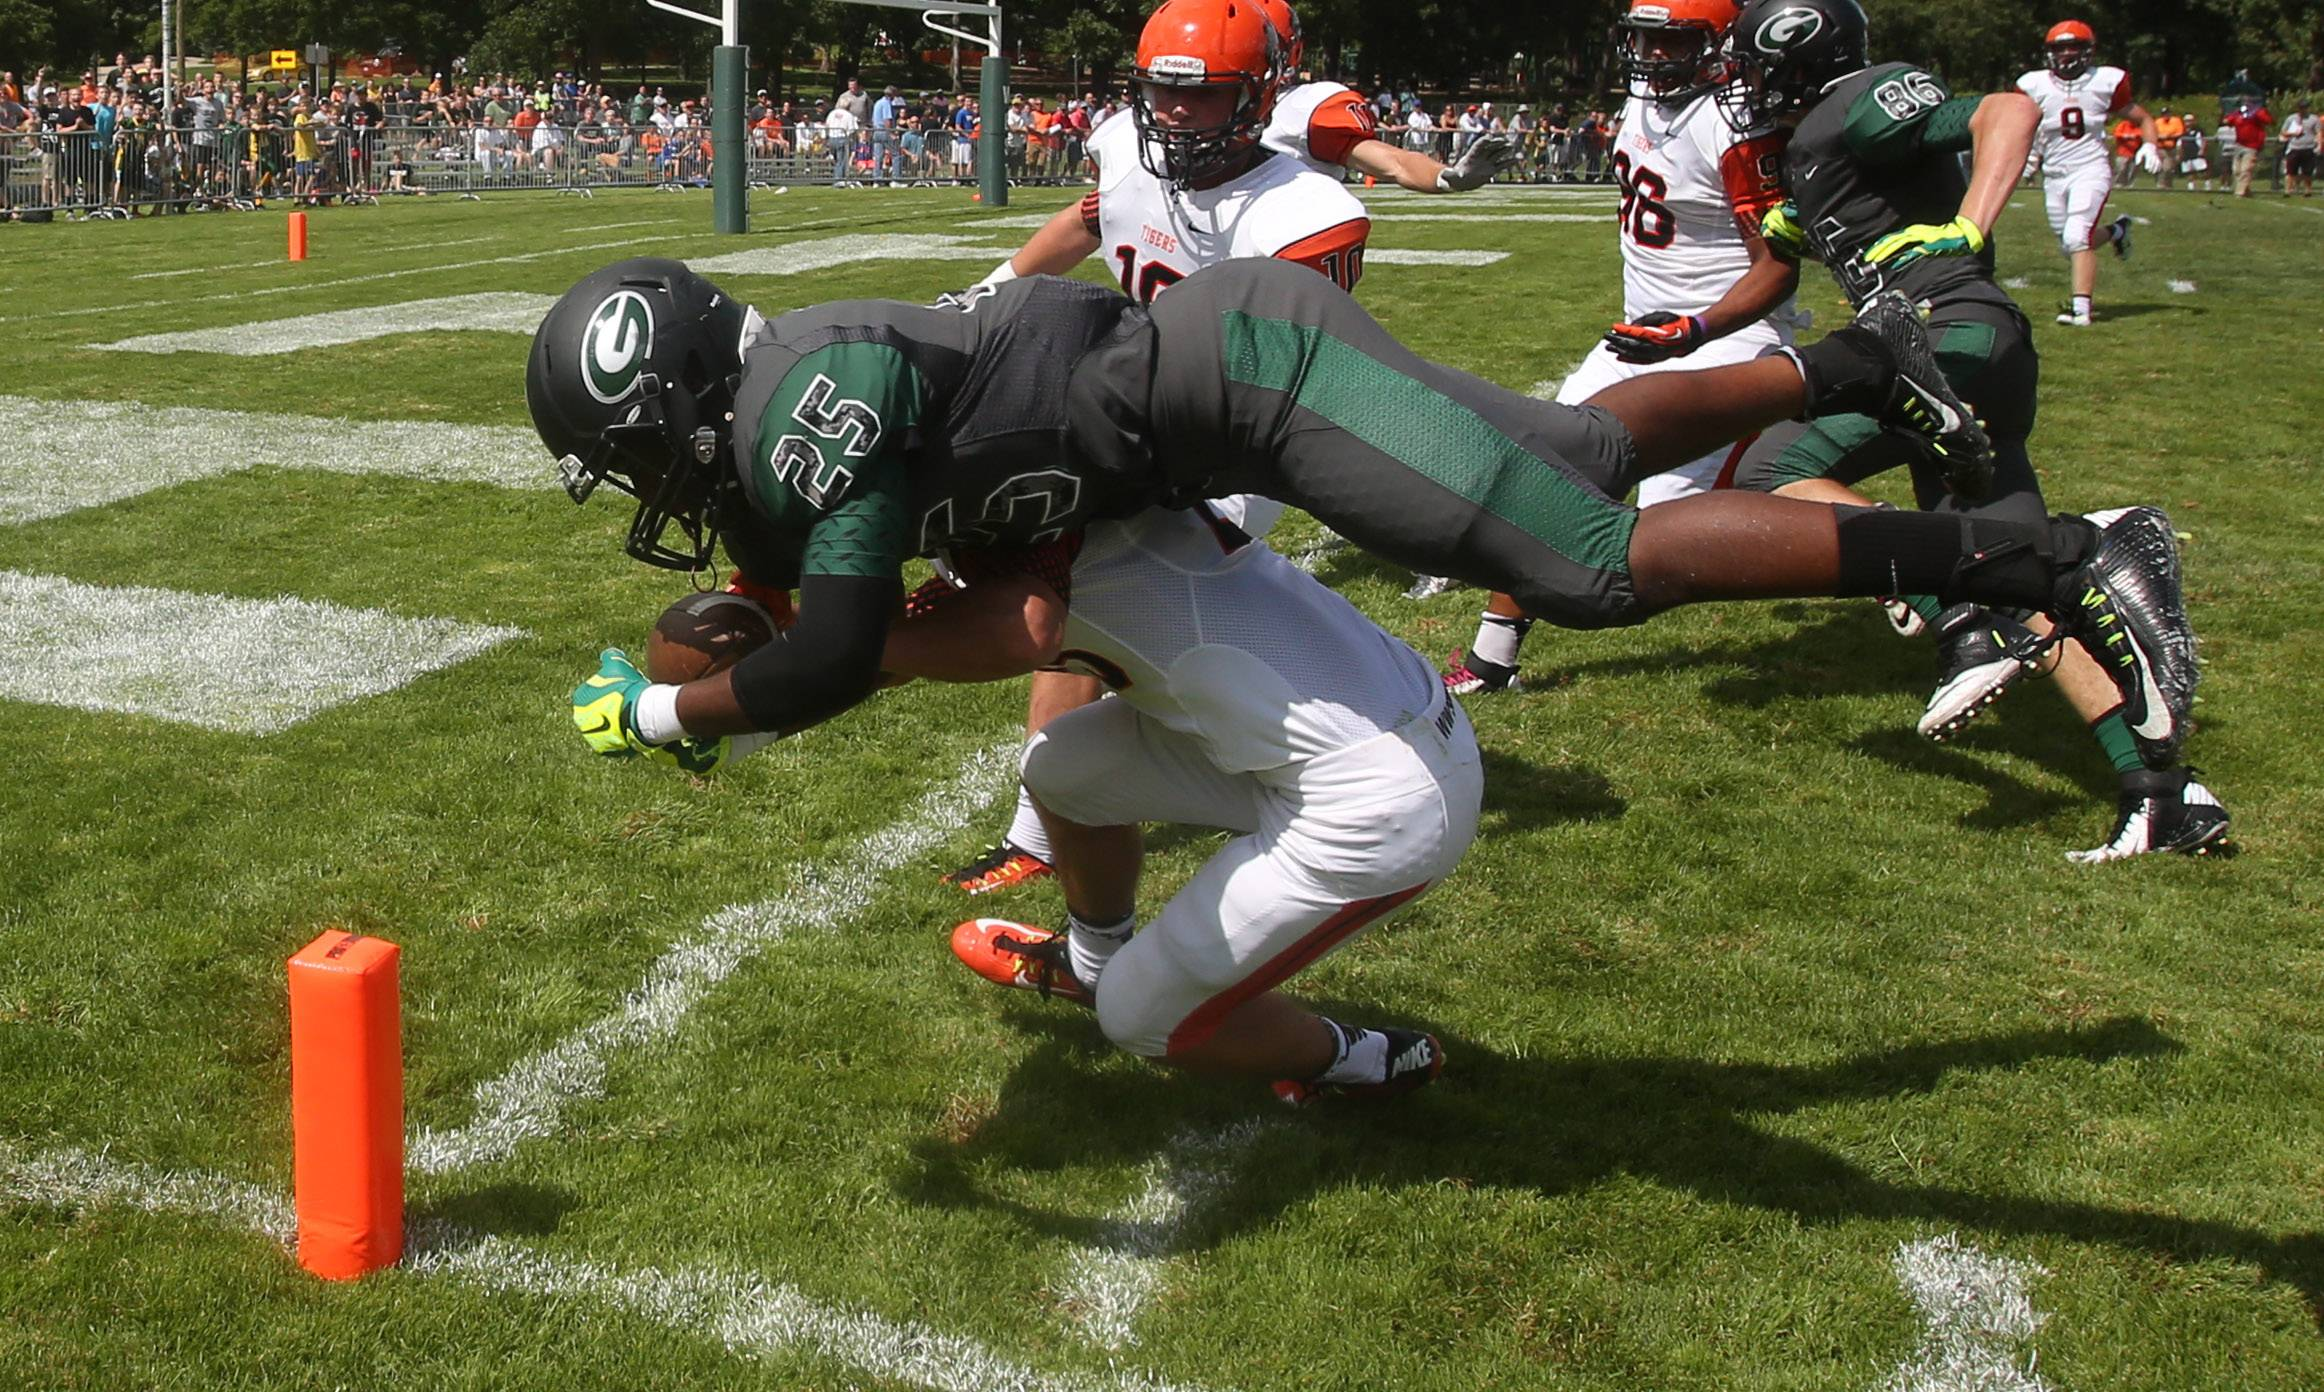 Images: Wheaton Warrenville South at Glenbard West football